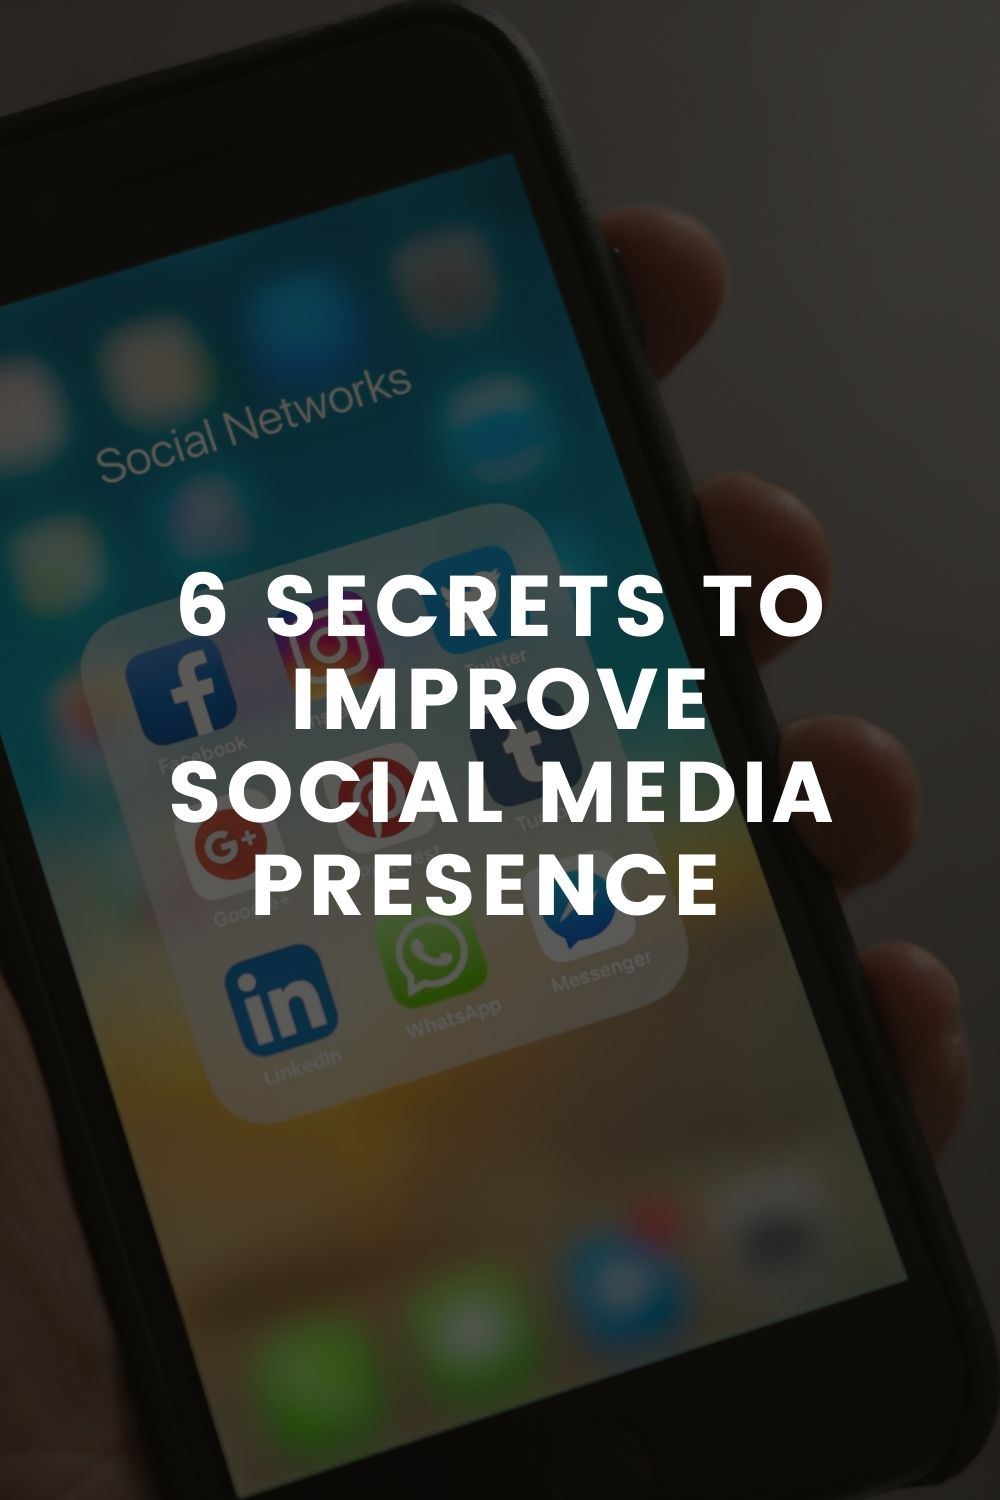 6 Secret Techniques To Improve Social Media Presence